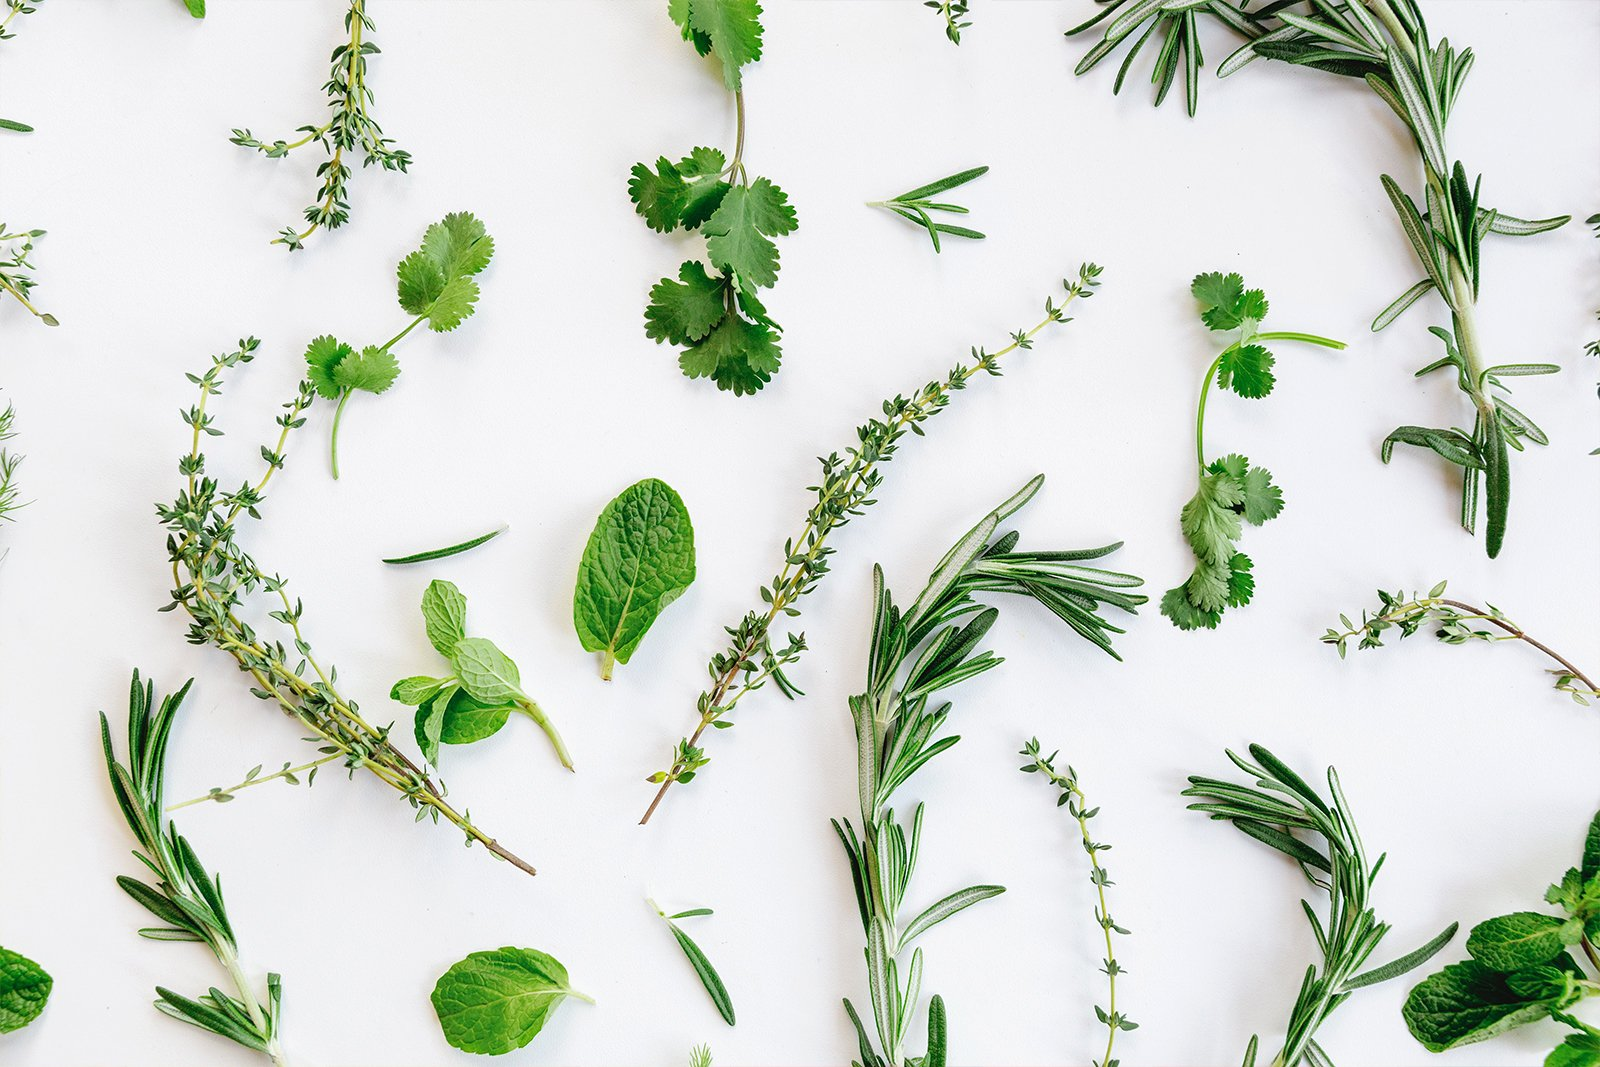 Italian Herbs on white countertop